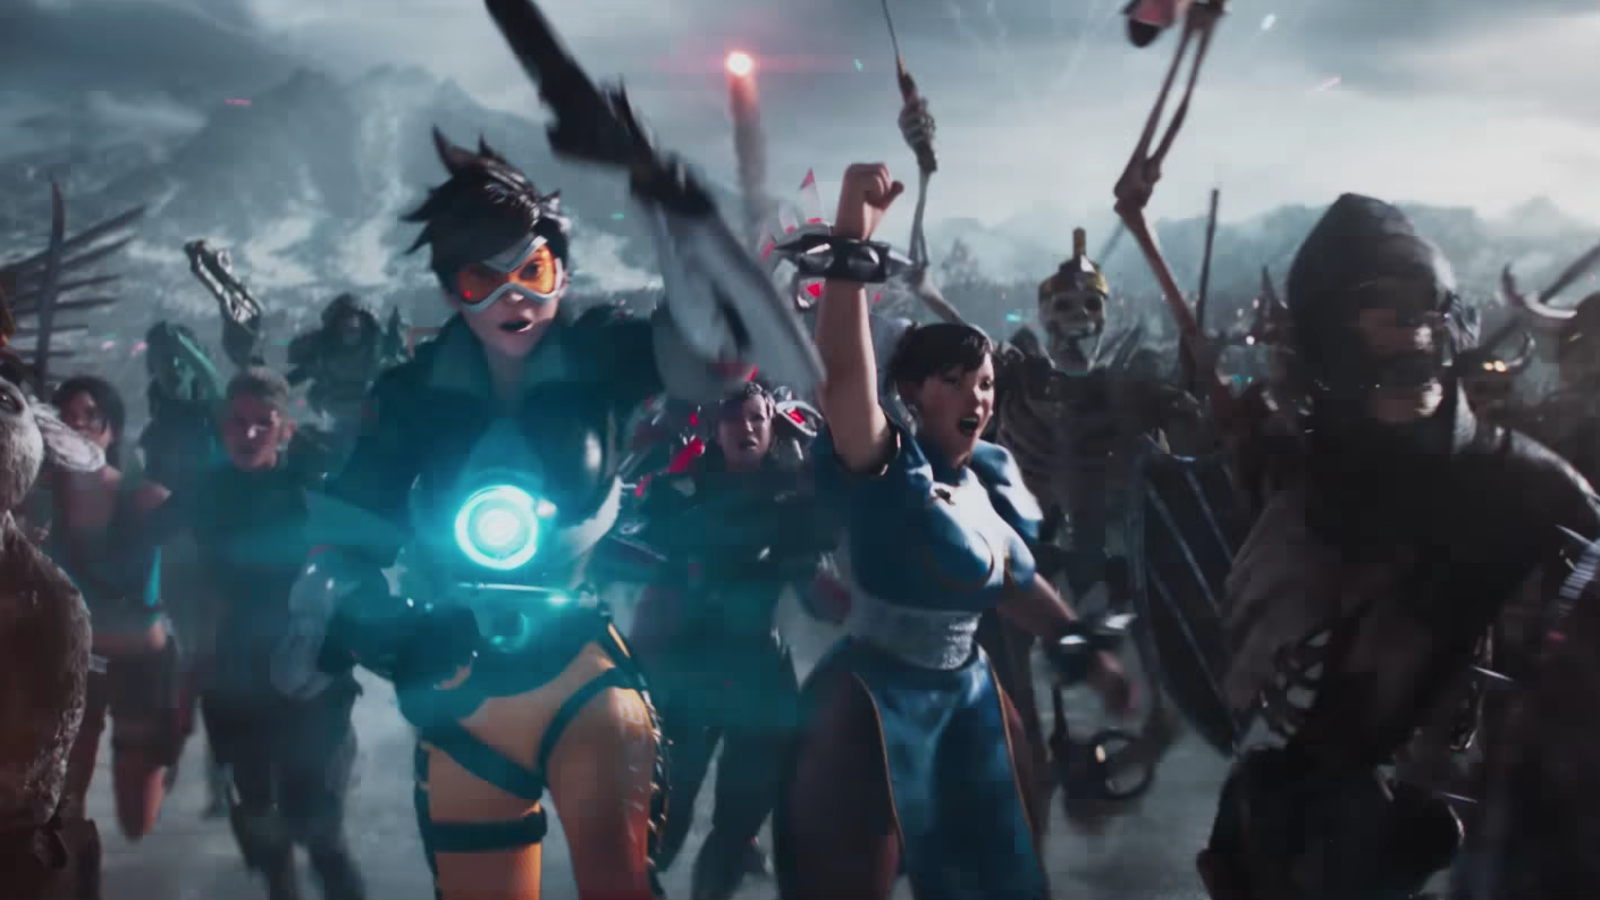 Anime Characters In Ready Player One : The new ready player one trailer is filled with video game anime